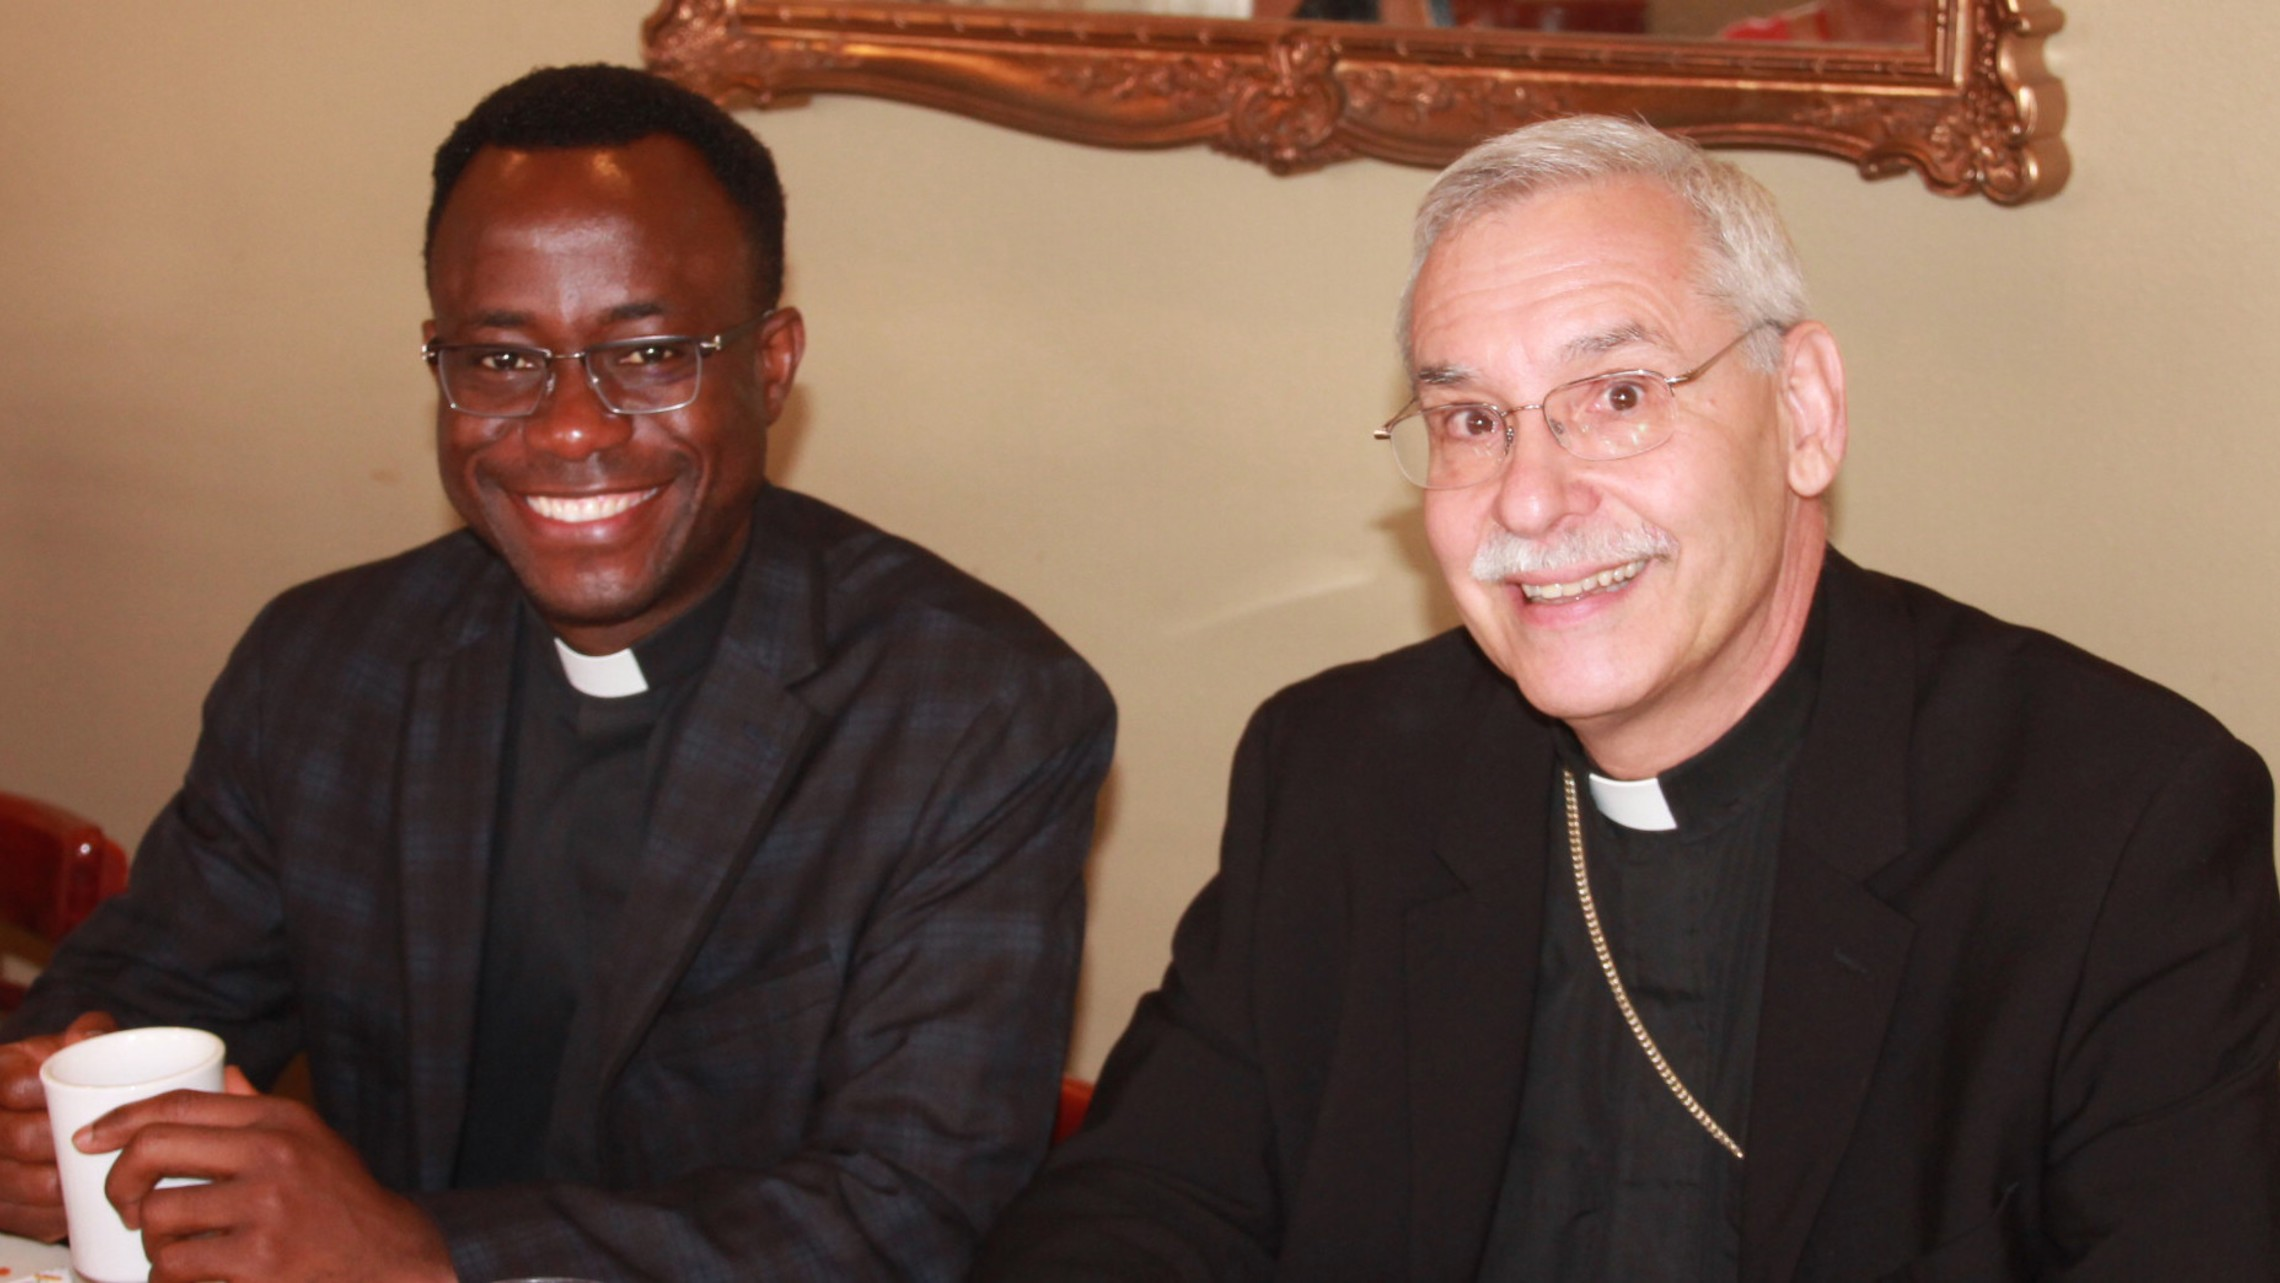 Father Joseph and Bishop Taylor